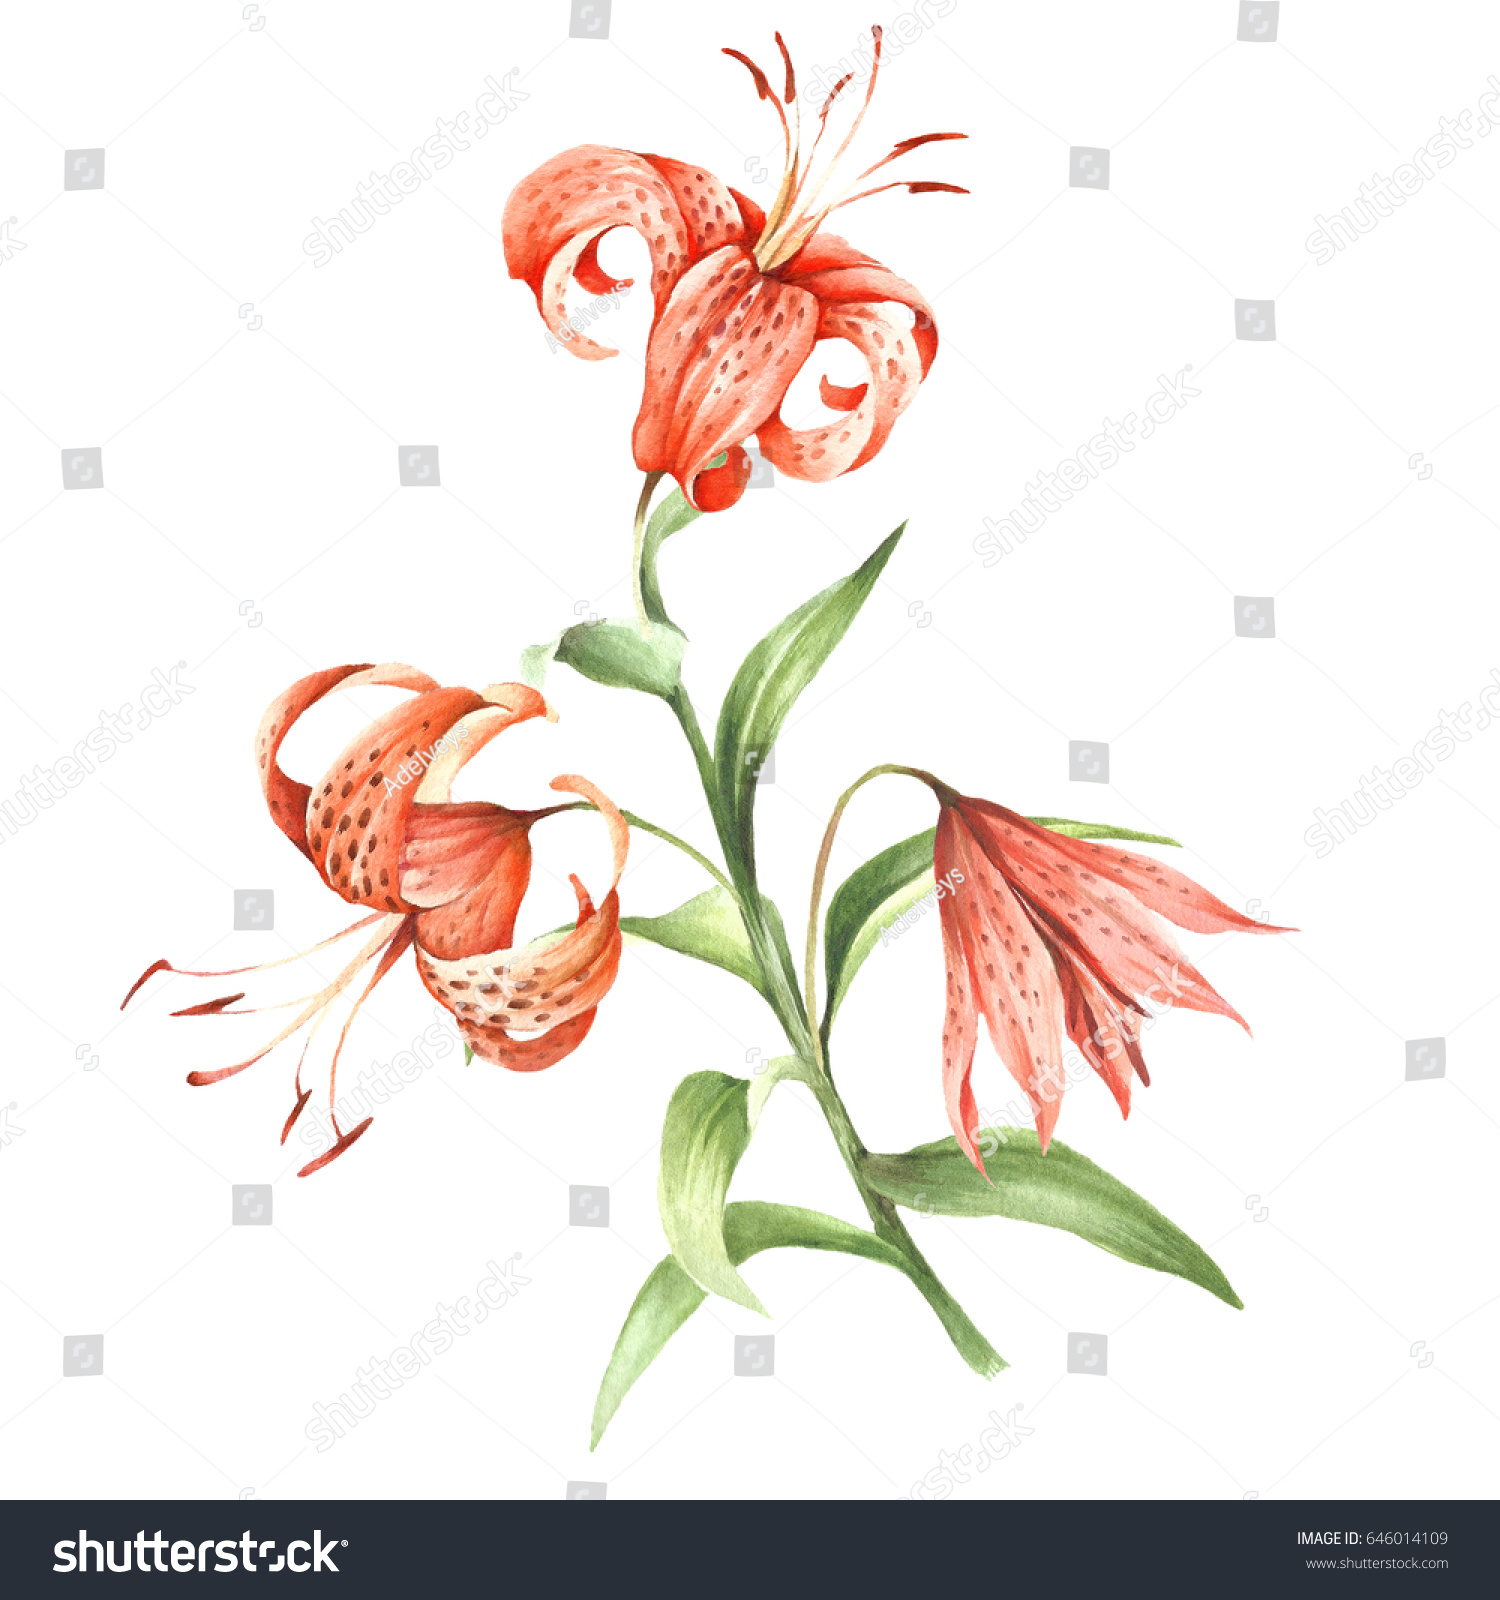 Image tiger lily flowers hand draw stock illustration - Tiger lily hair salon ...